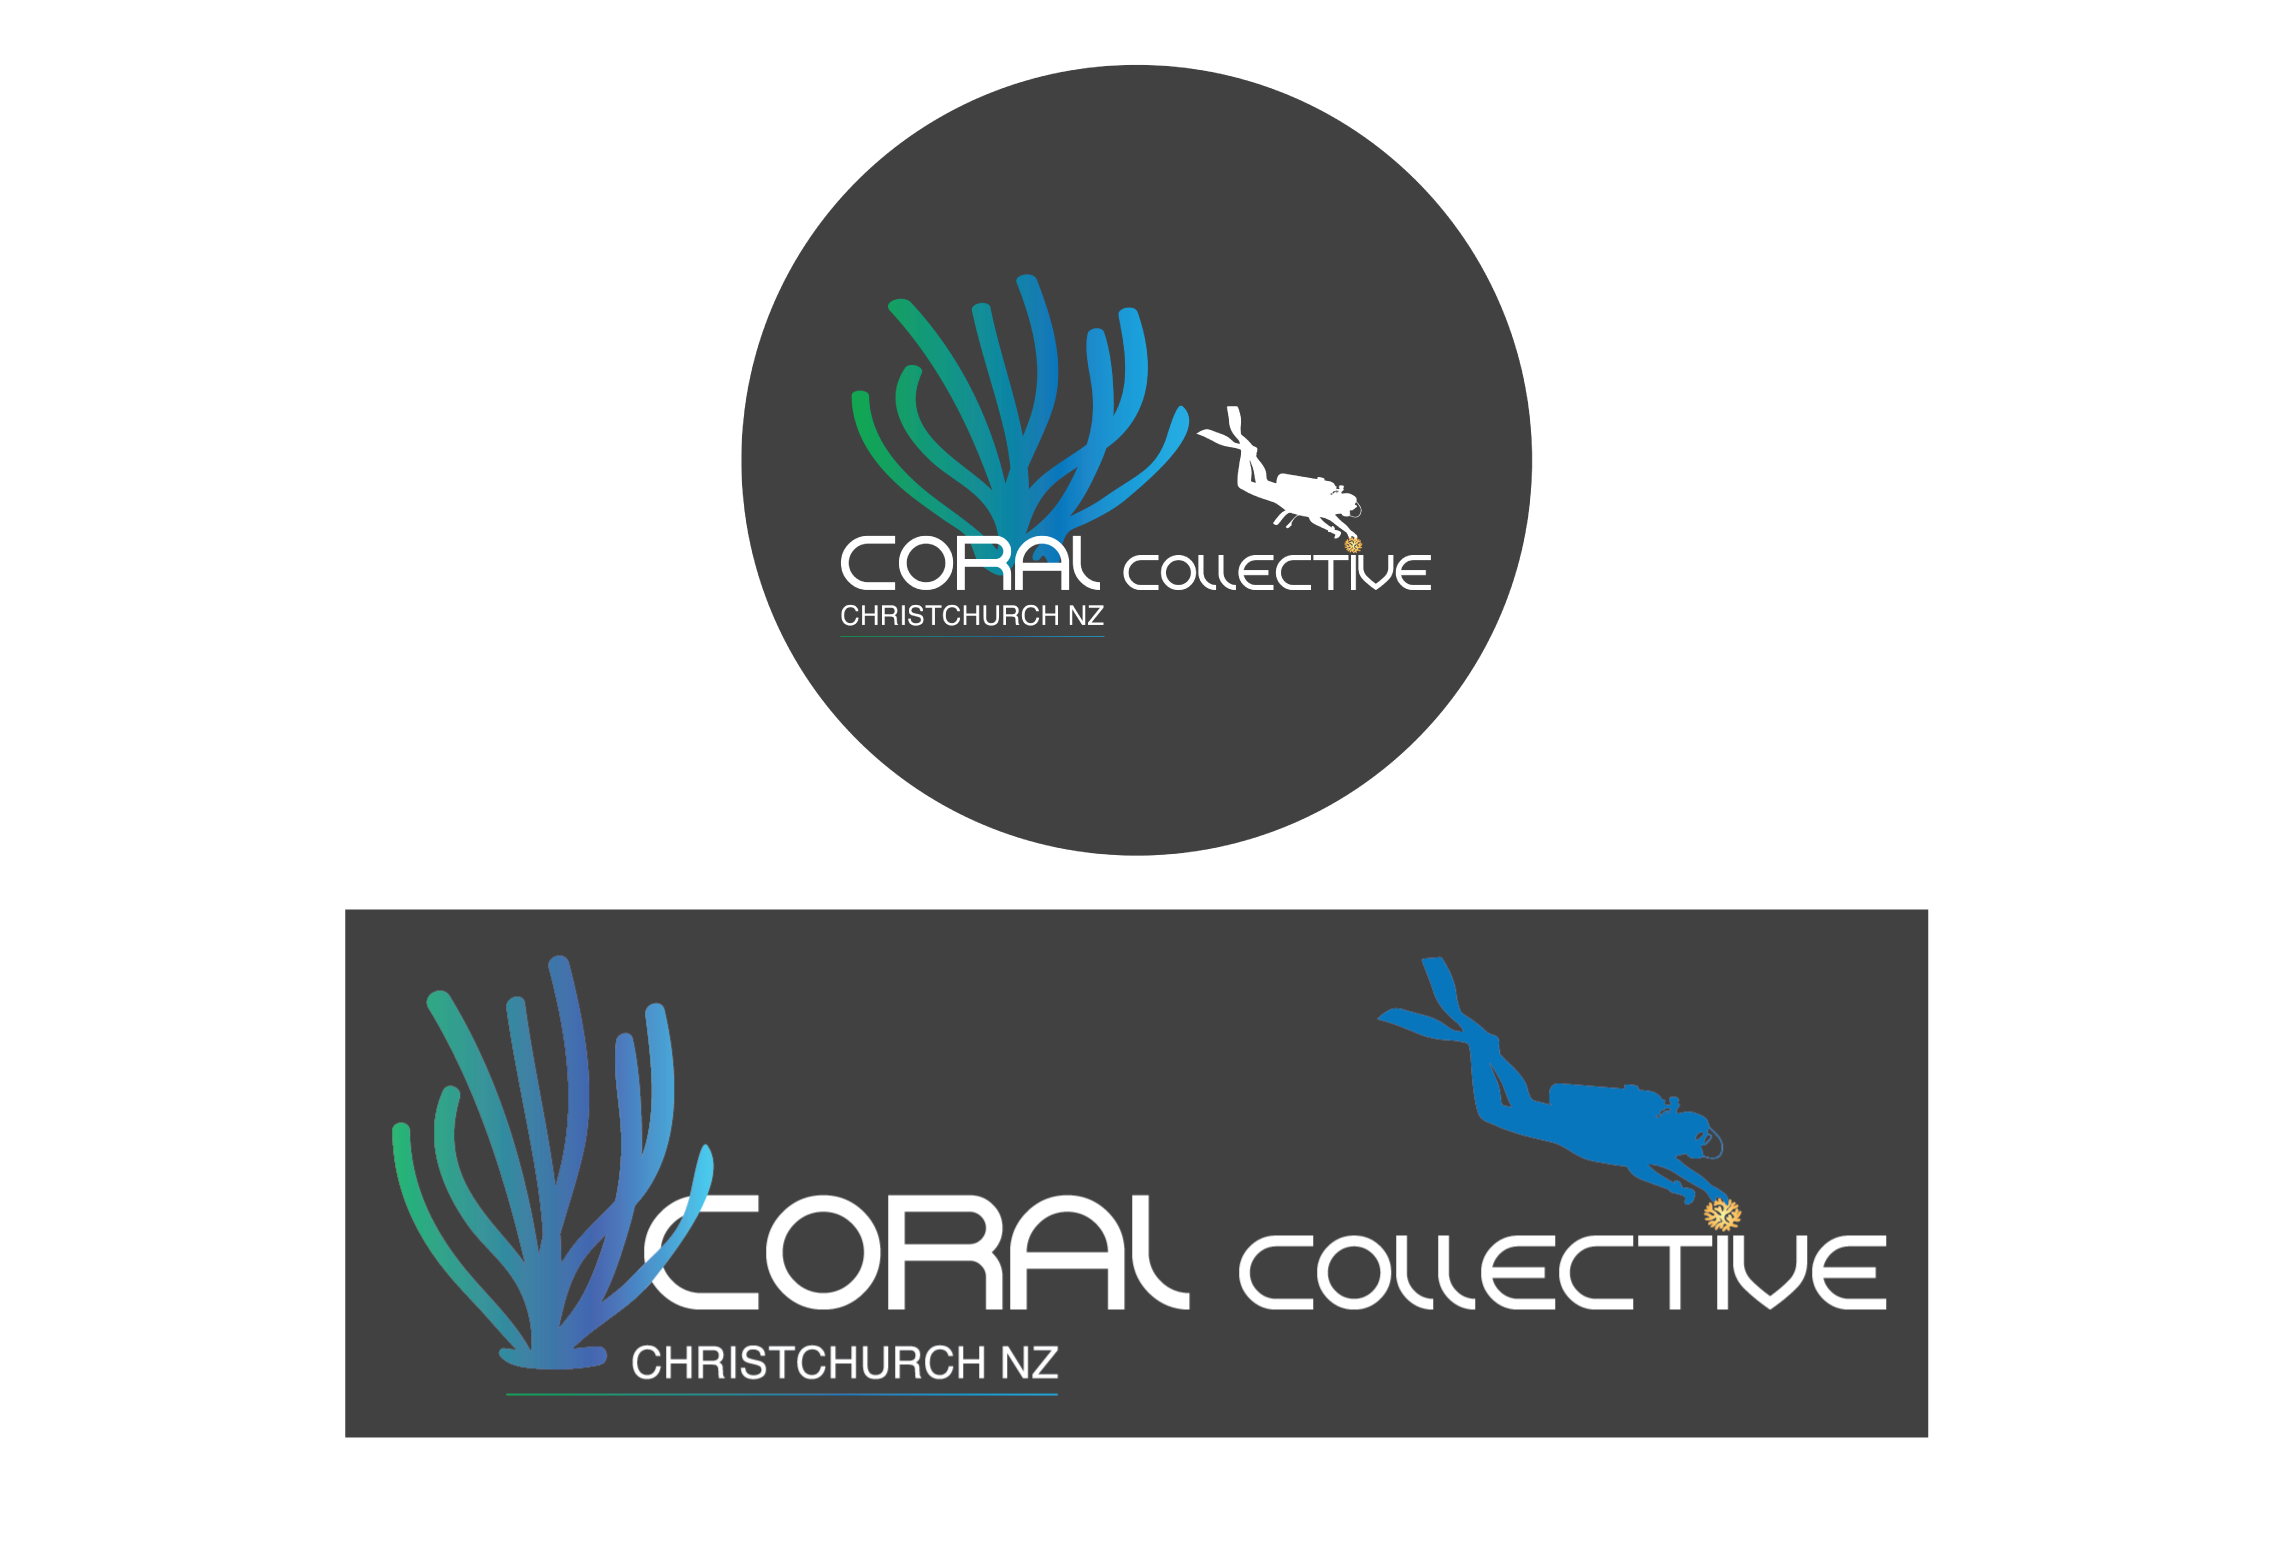 Coral Collective